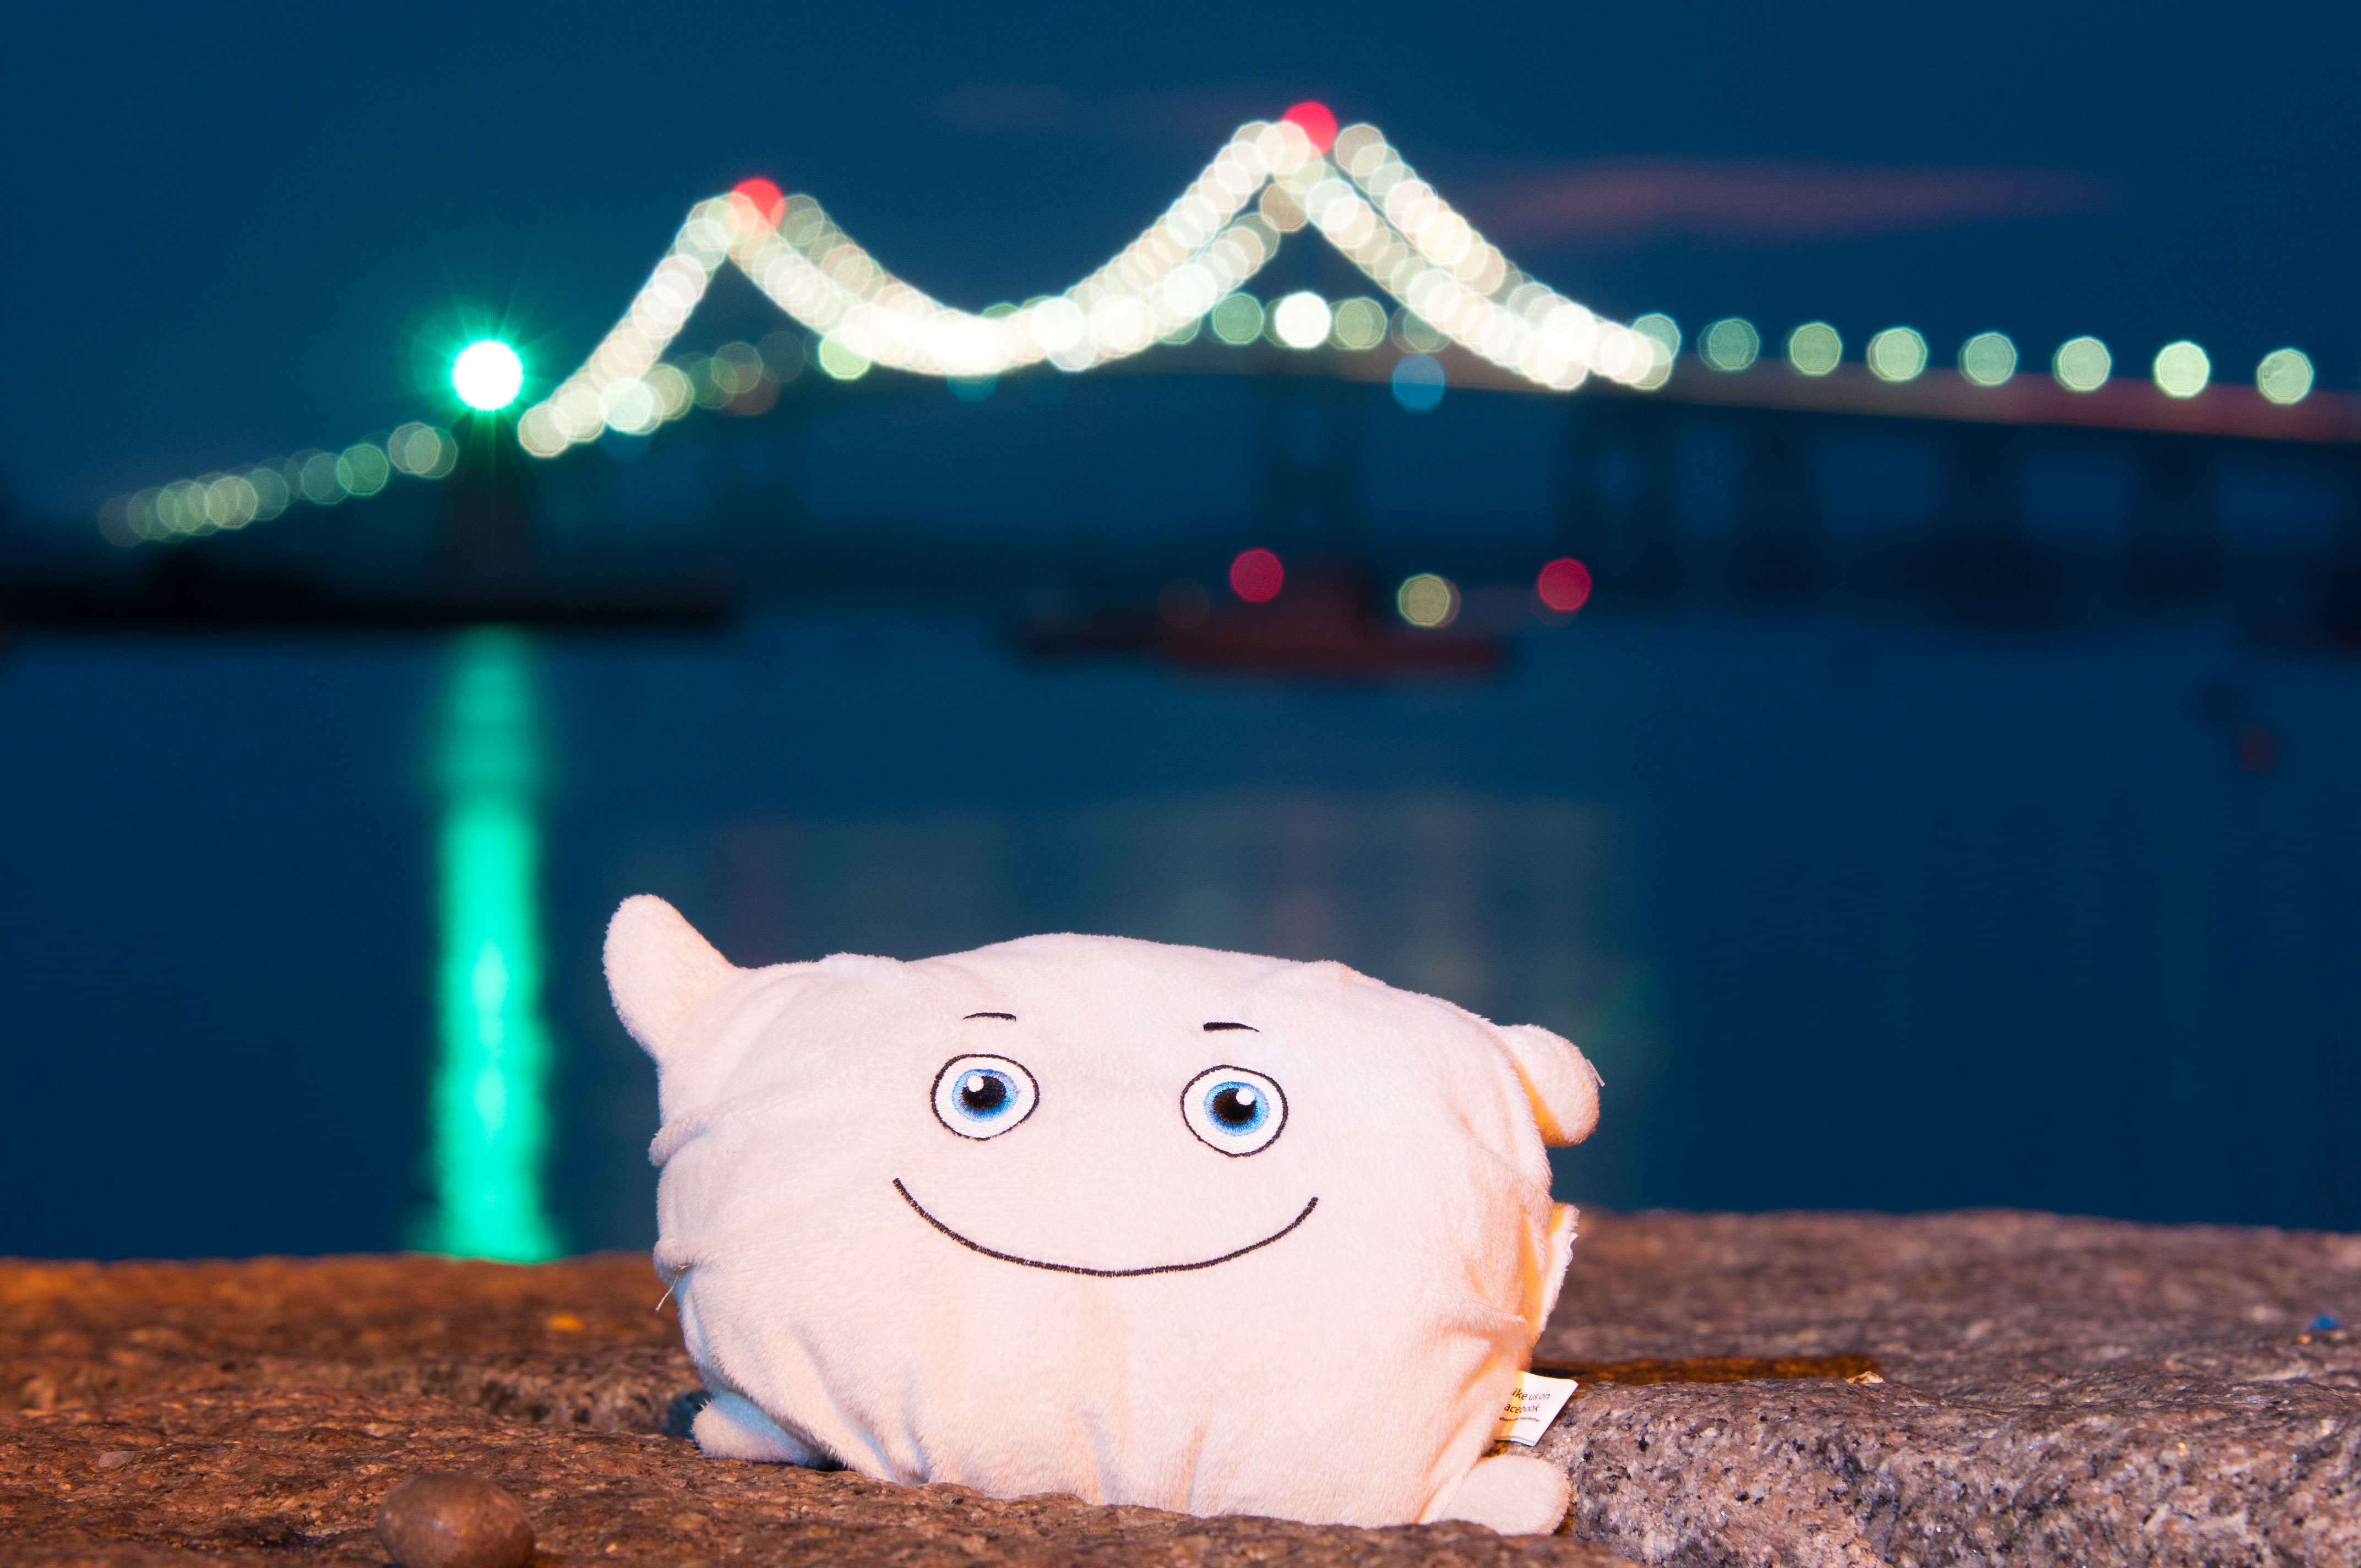 Pillow Featherbed in front of the Newport Bridge